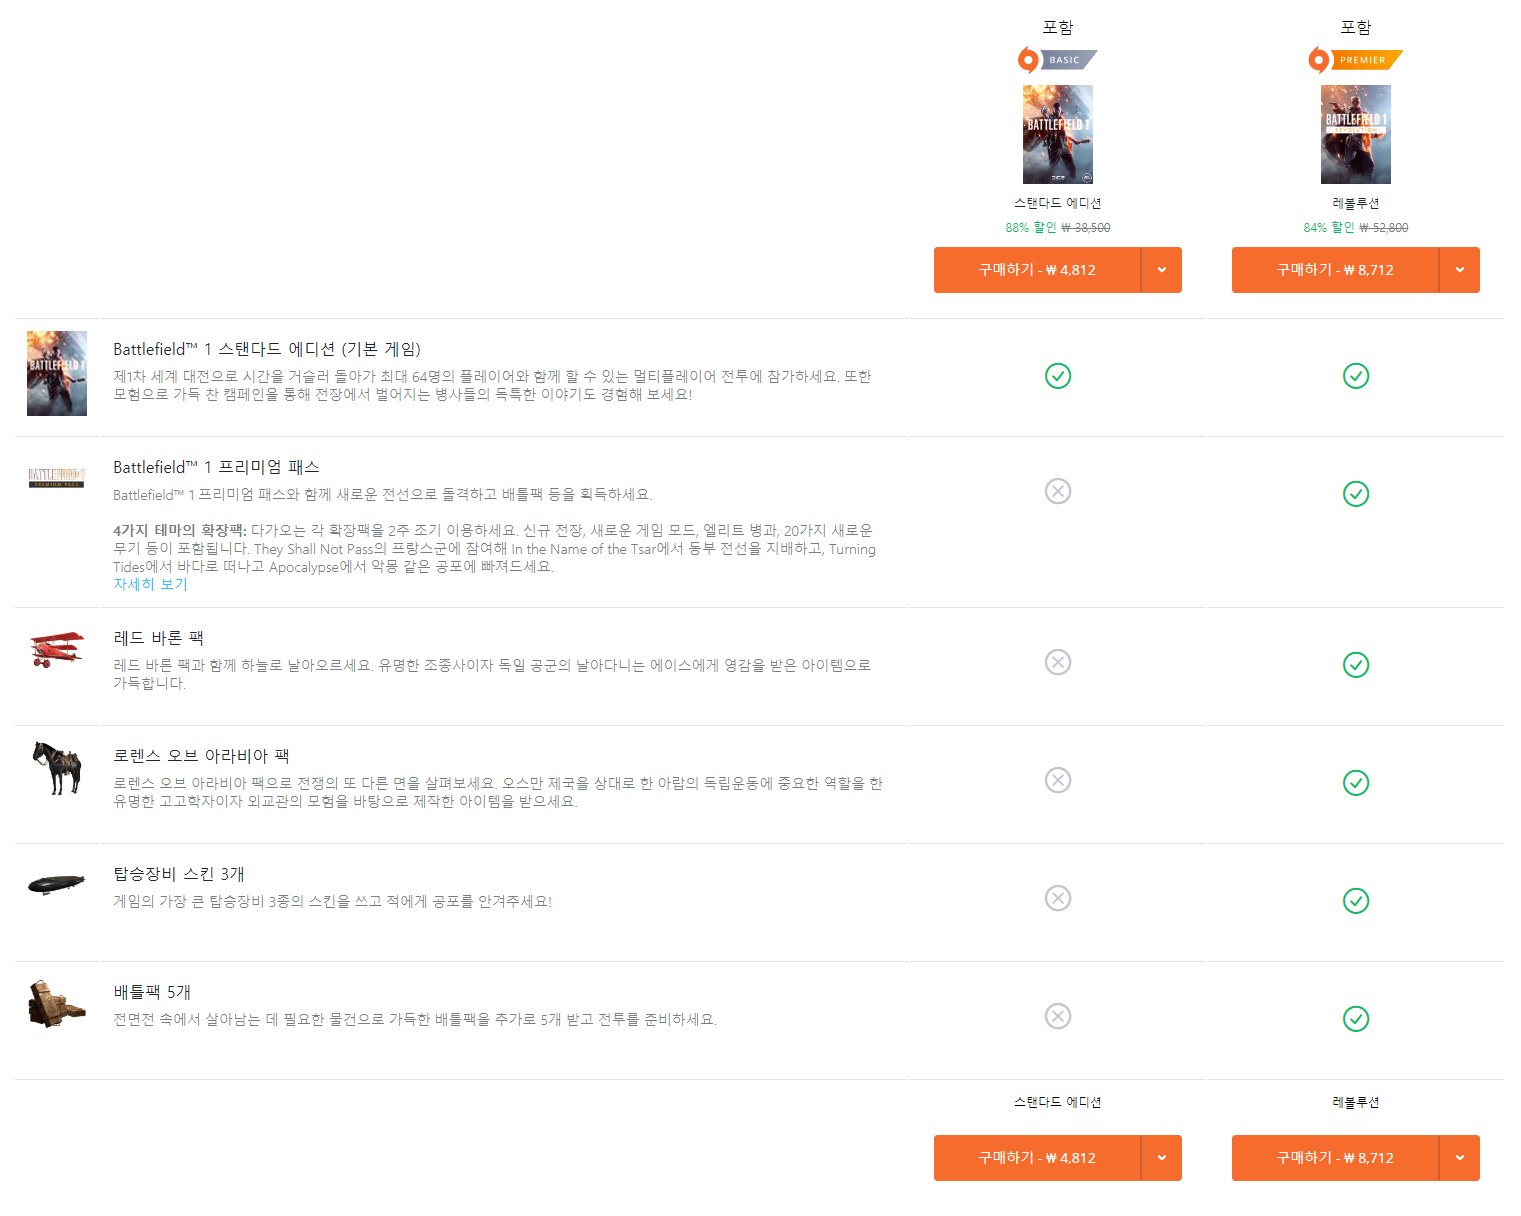 screenshot-www.origin.com-2018.09.12-03-23-28.png